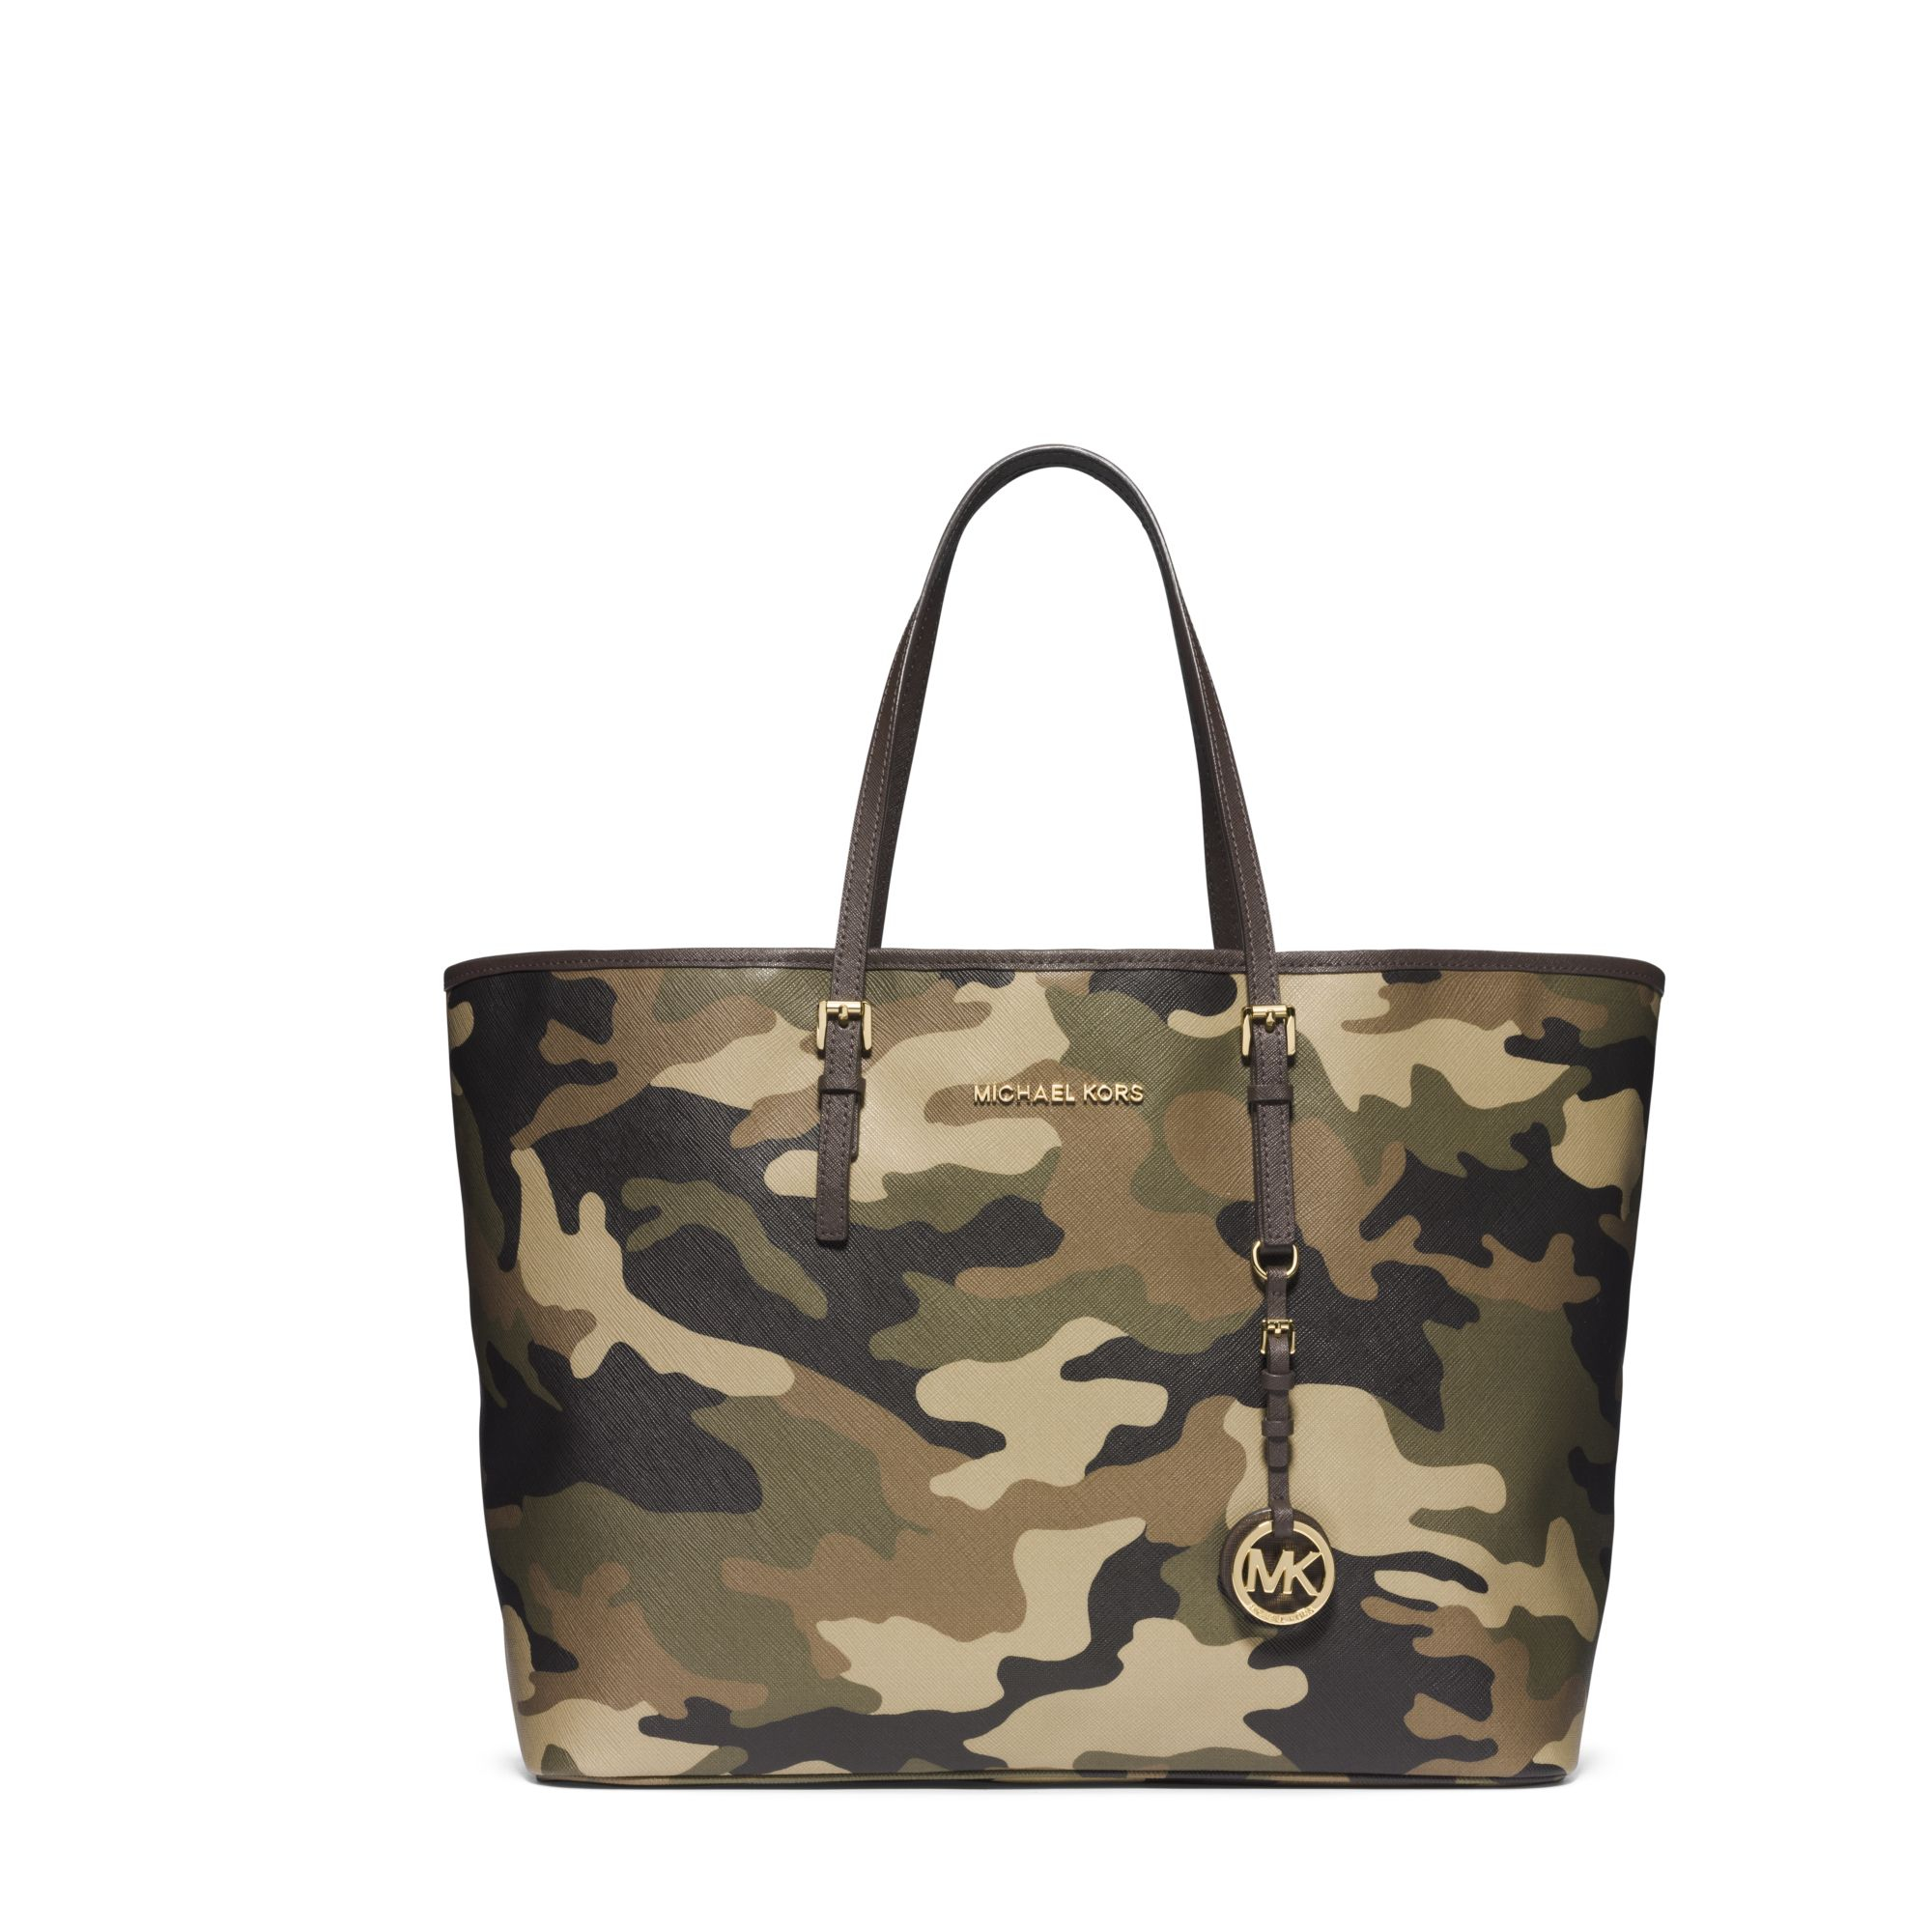 michael kors jet set travel camouflage saffiano leather medium tote in green lyst. Black Bedroom Furniture Sets. Home Design Ideas